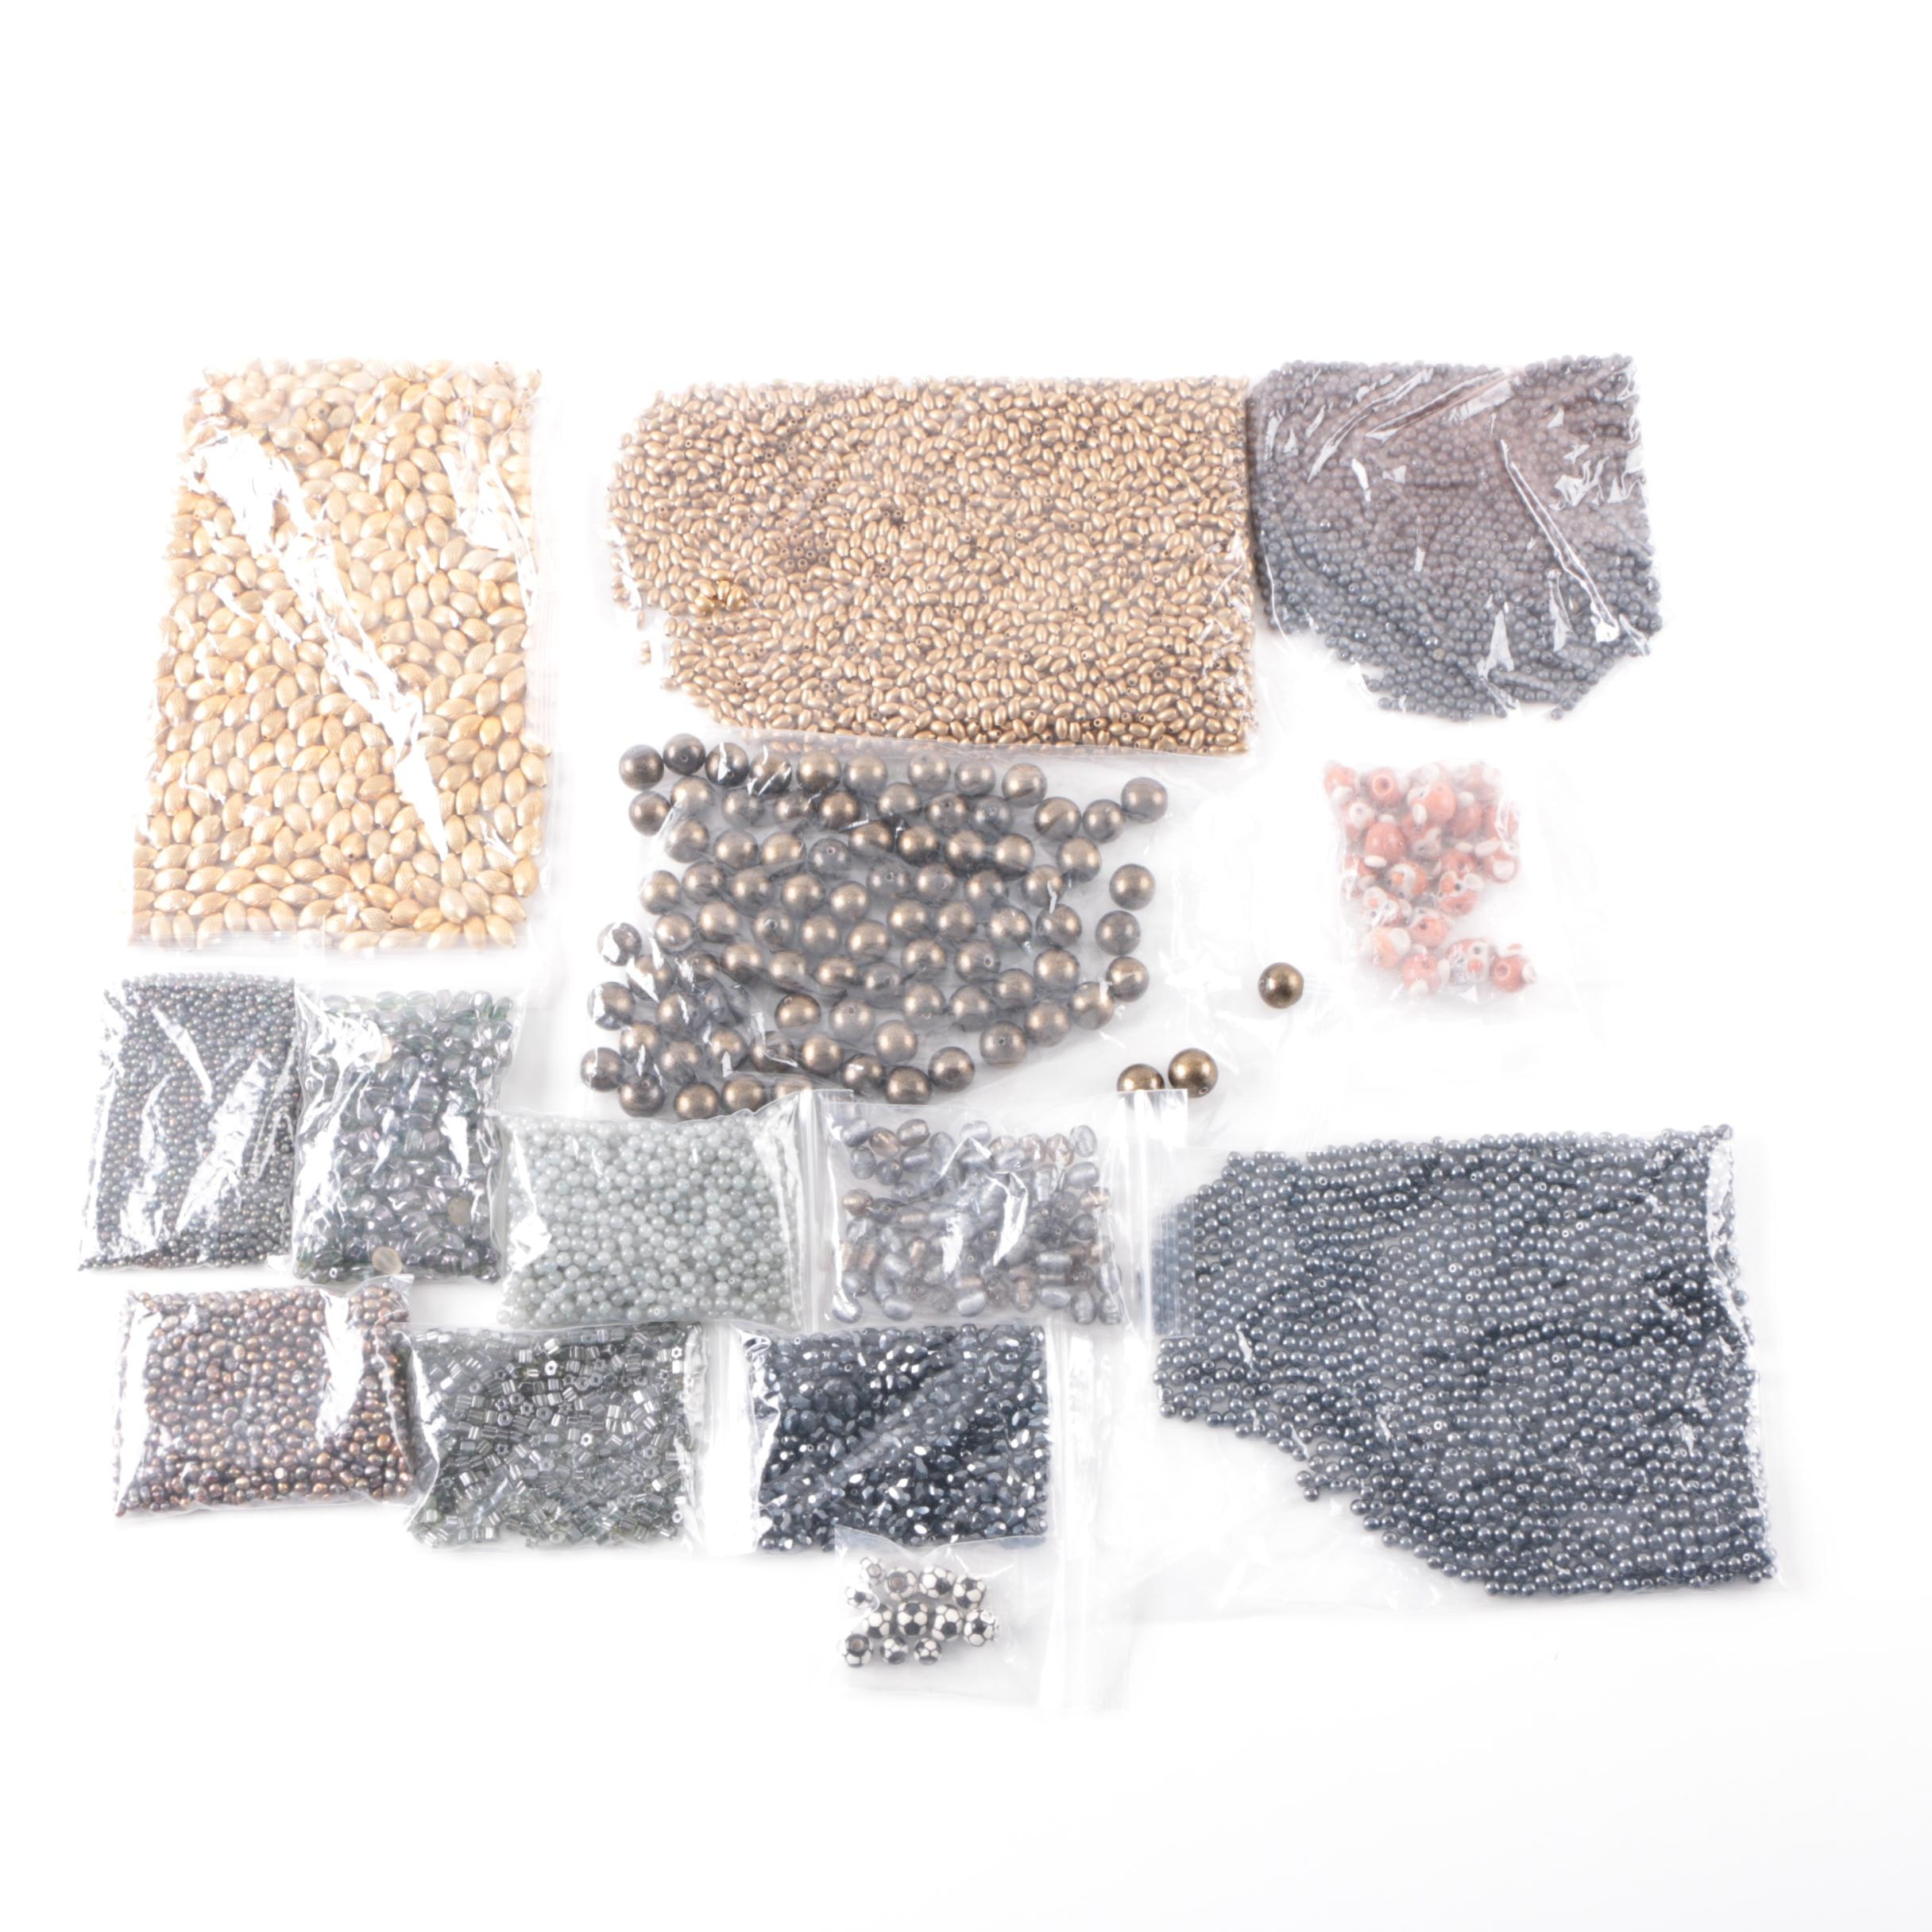 Assortment of Loose Beads